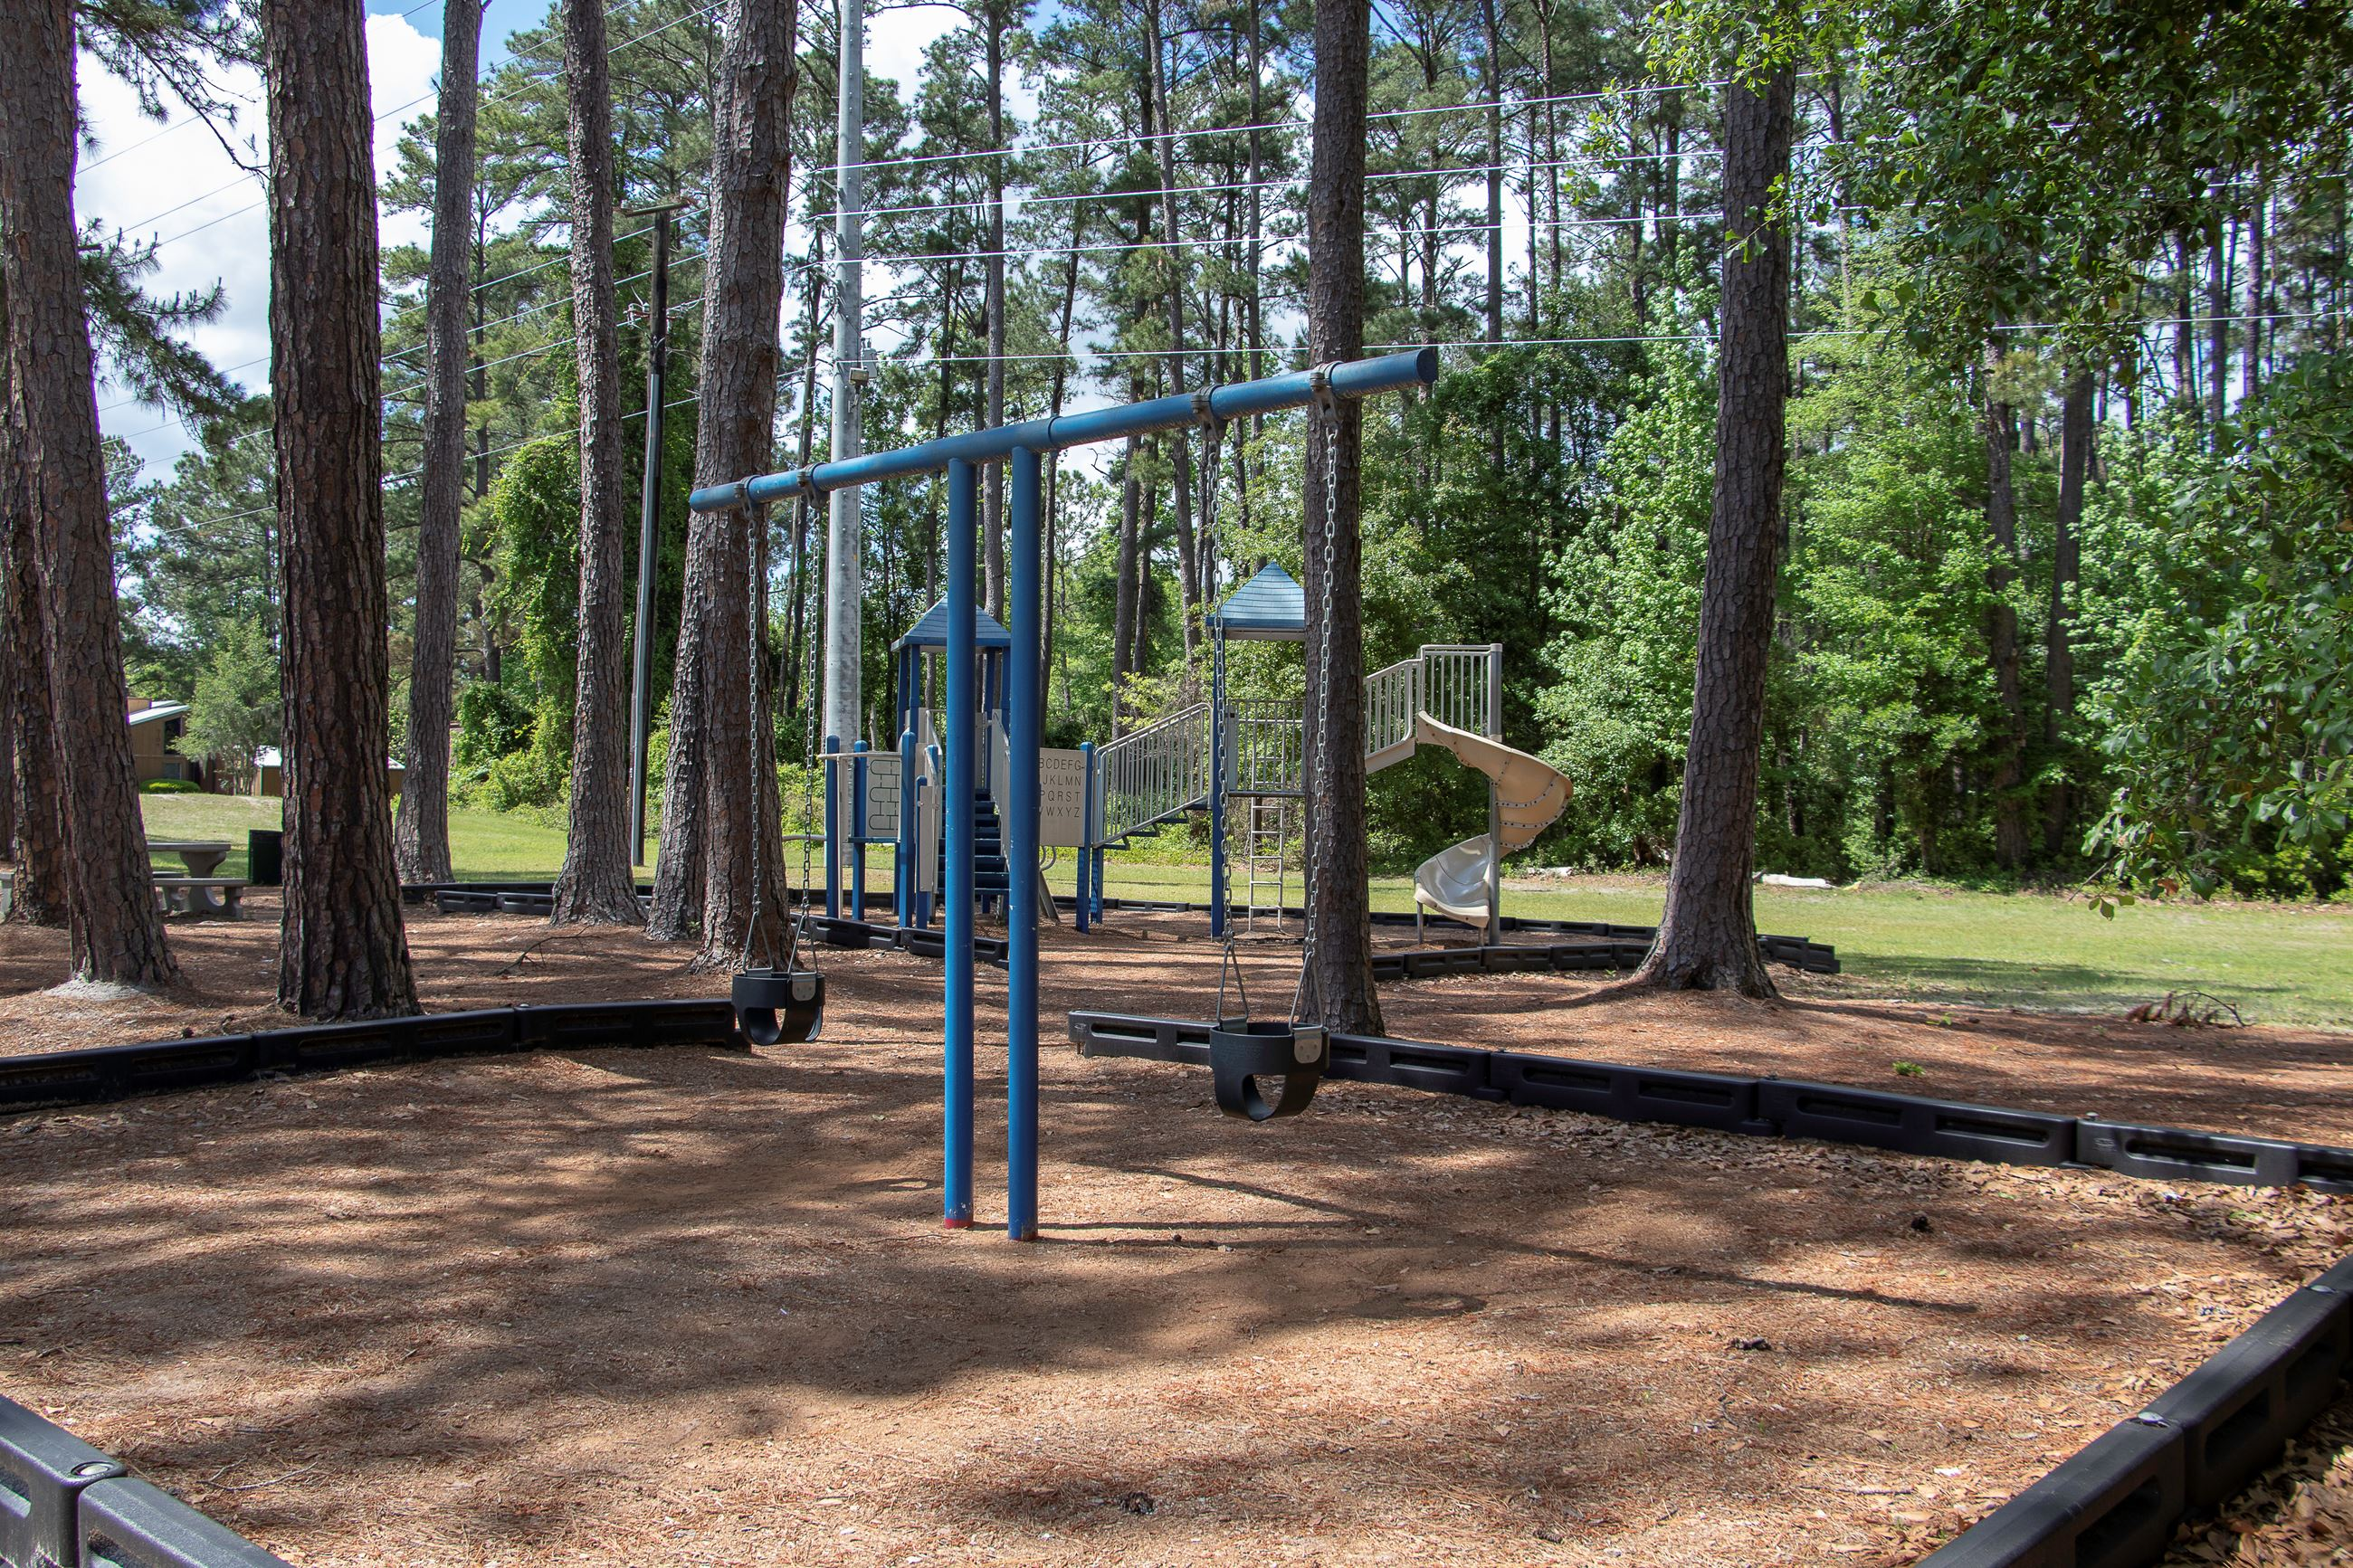 Image of a playground in a park.